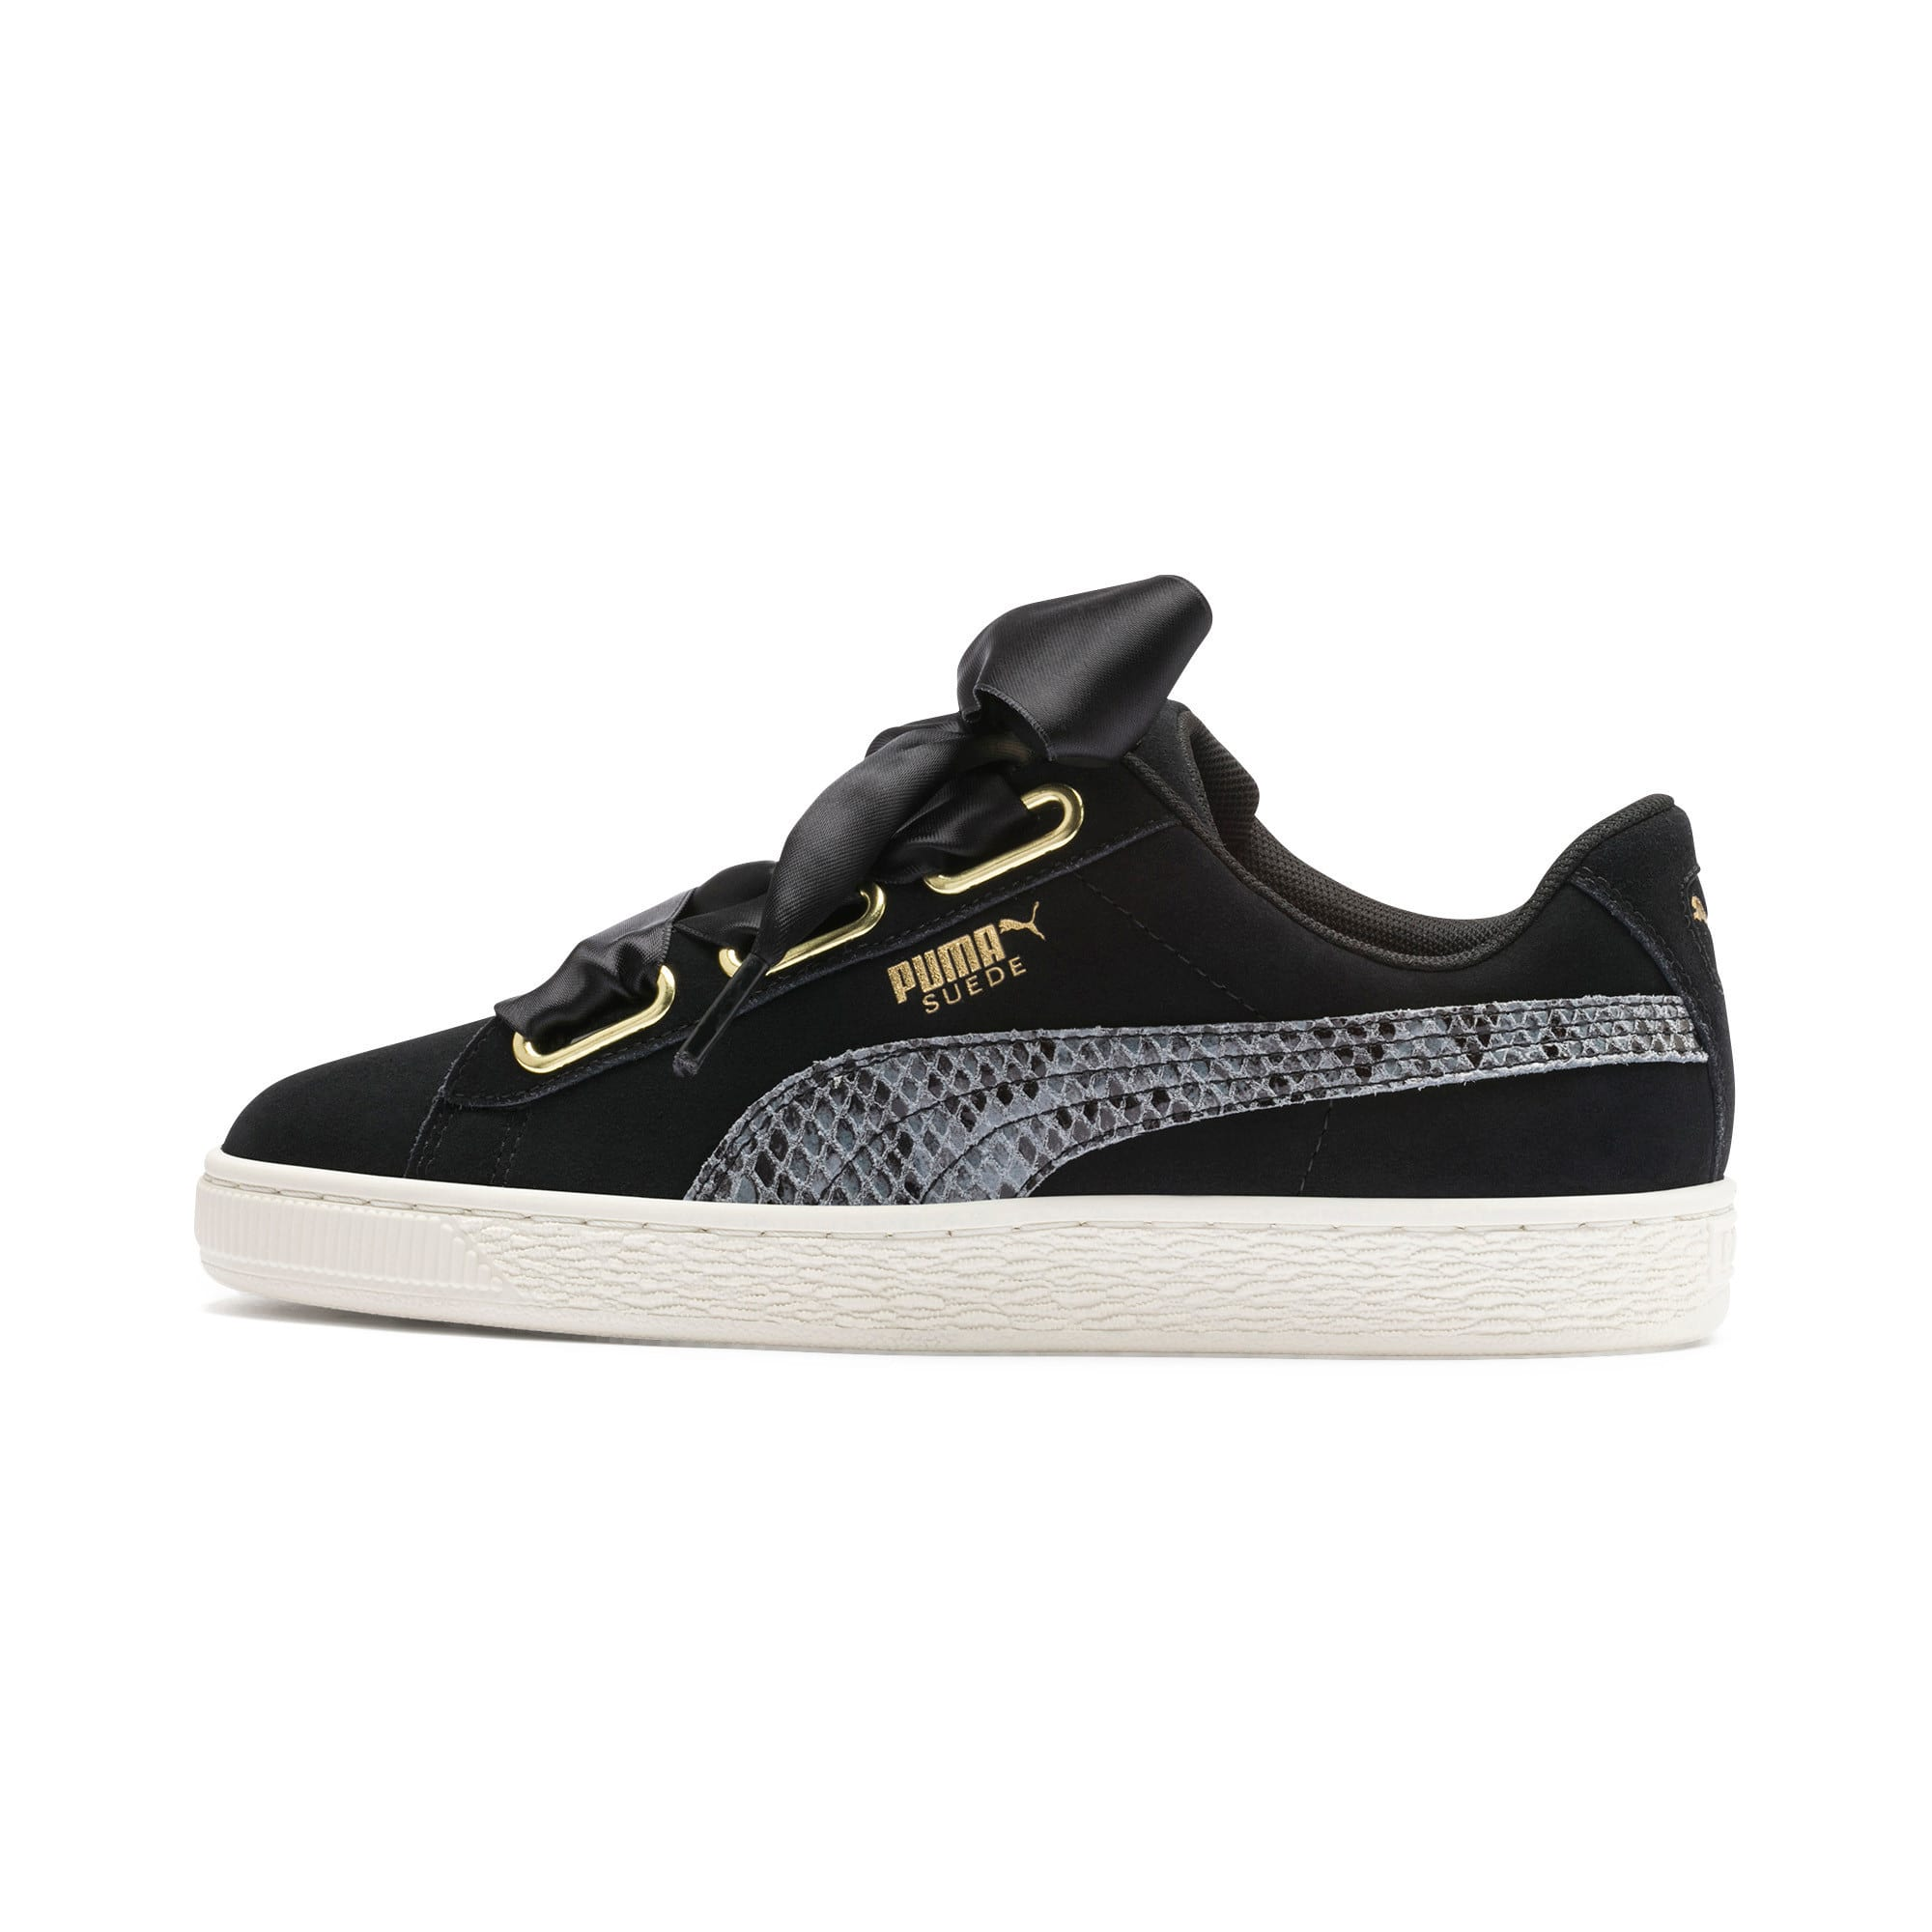 Thumbnail 1 of Suede Heart Snake Lux Women's Trainers, Puma Black-Puma Team Gold, medium-IND